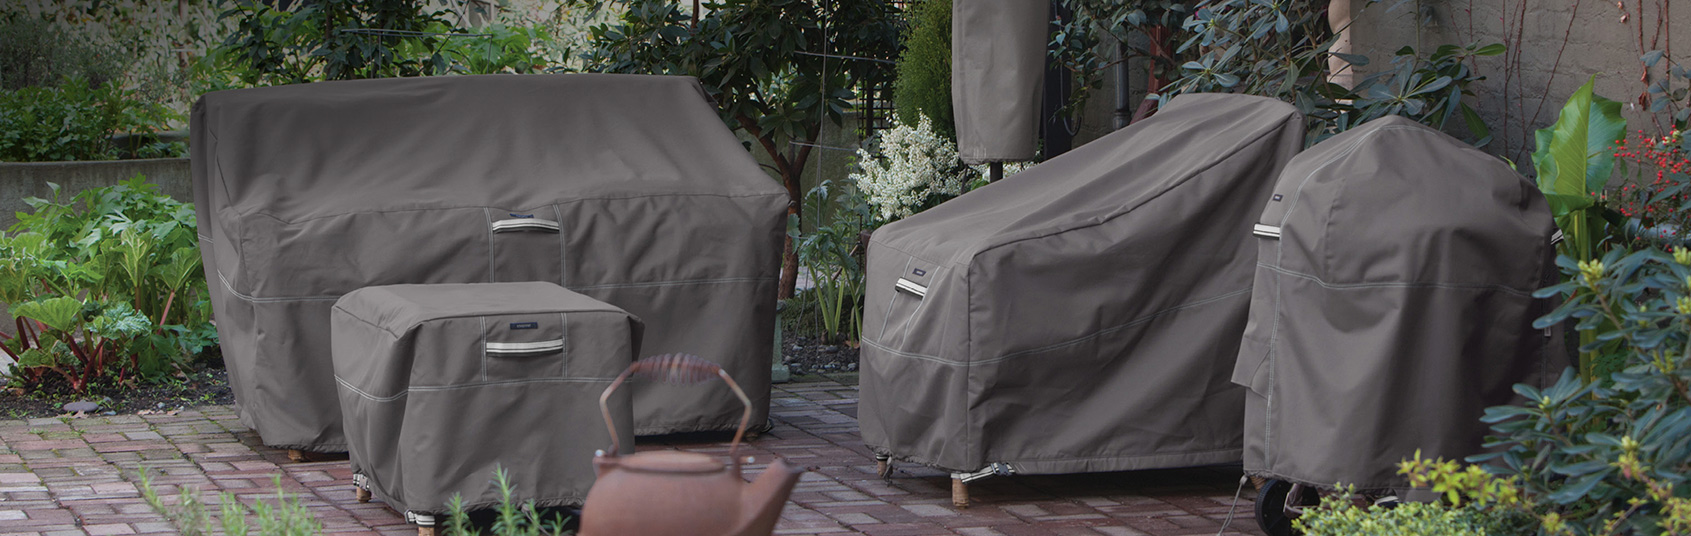 furniture outdoor covers. Covers Furniture Outdoor